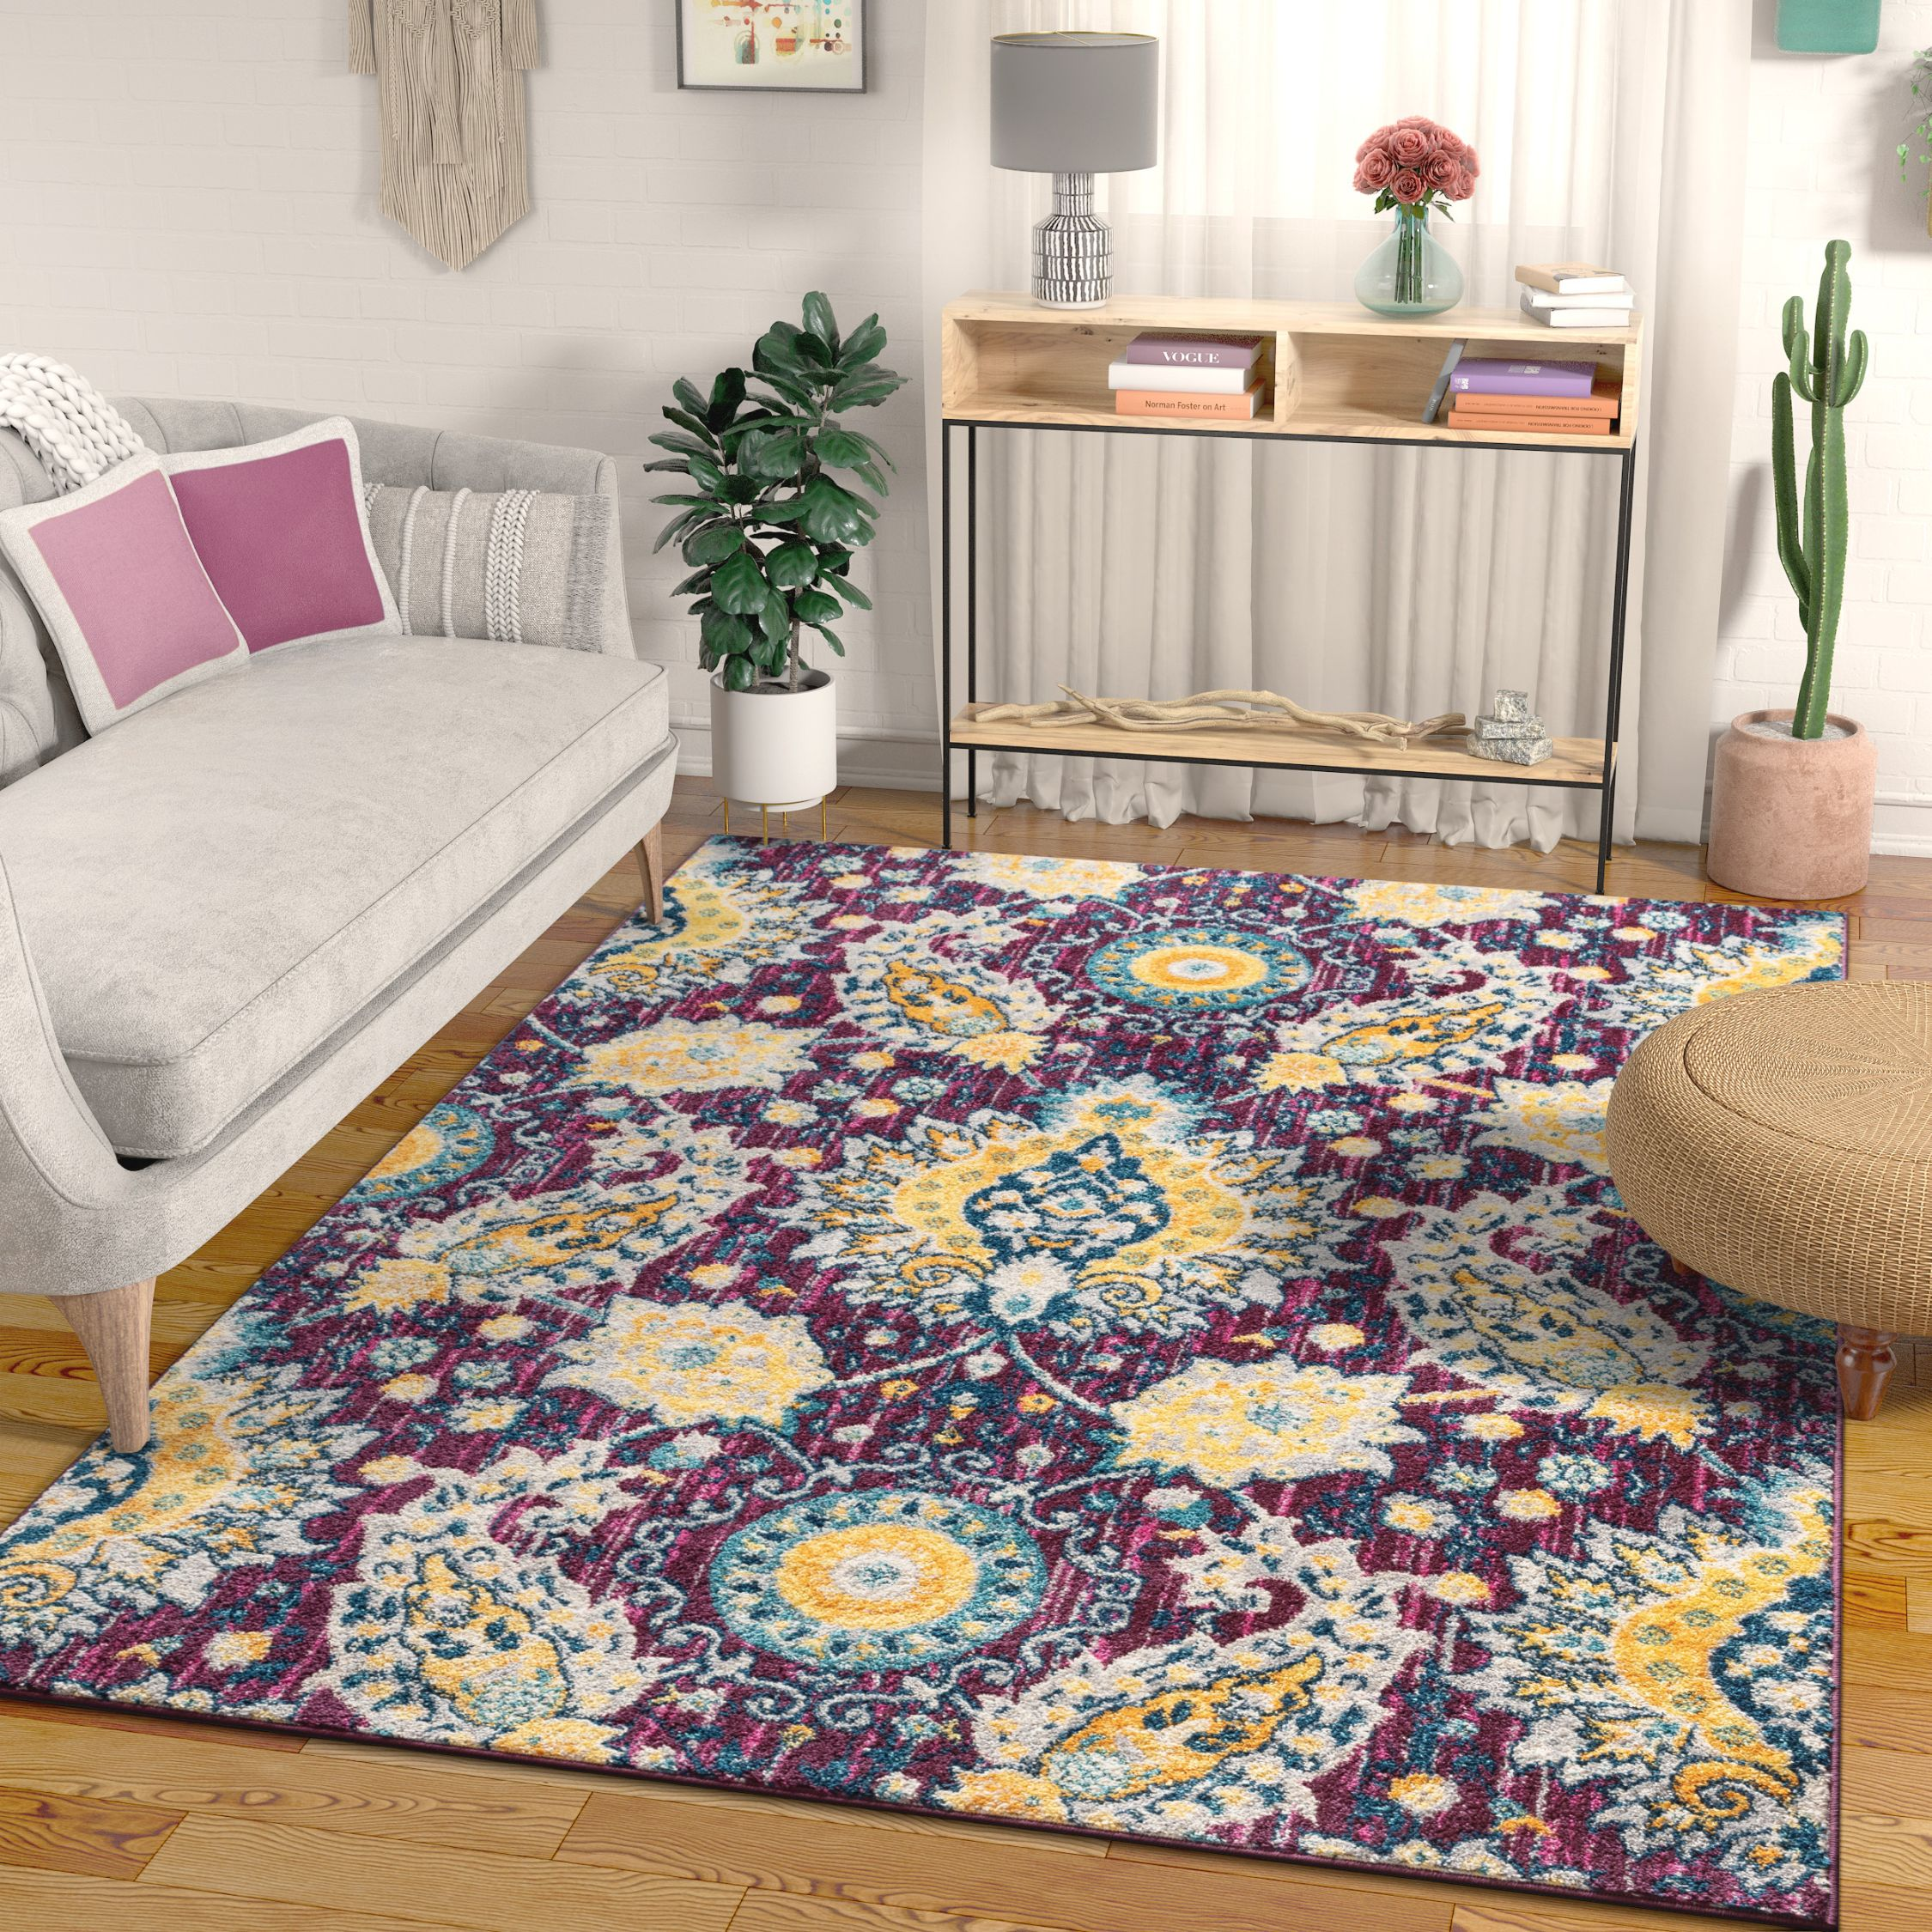 "Well Woven Mila Oriental Medallion Vintage Purple & Yellow Multicolor Area Rug 5x7 (5'3"" x 7'3"")"